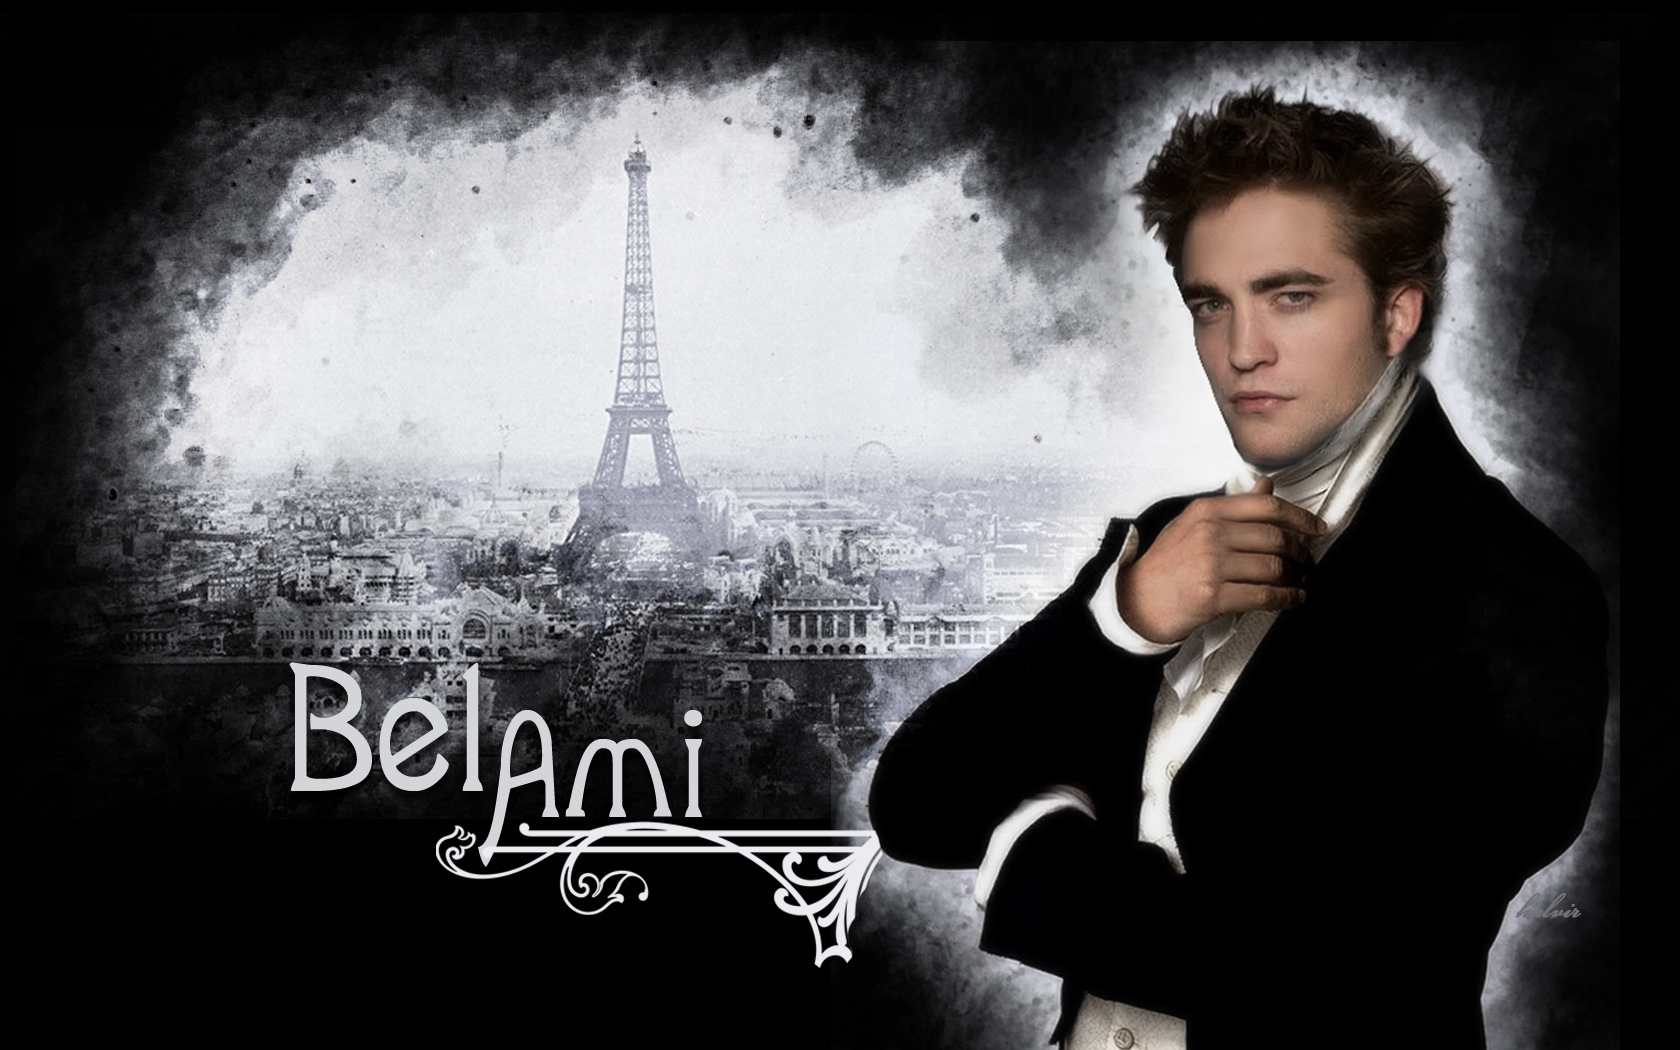 Robert Fan Art Robert-Pattinson-BEL-AMI-Wallpaper-HOT-twilight-series-9317289-1680-1050